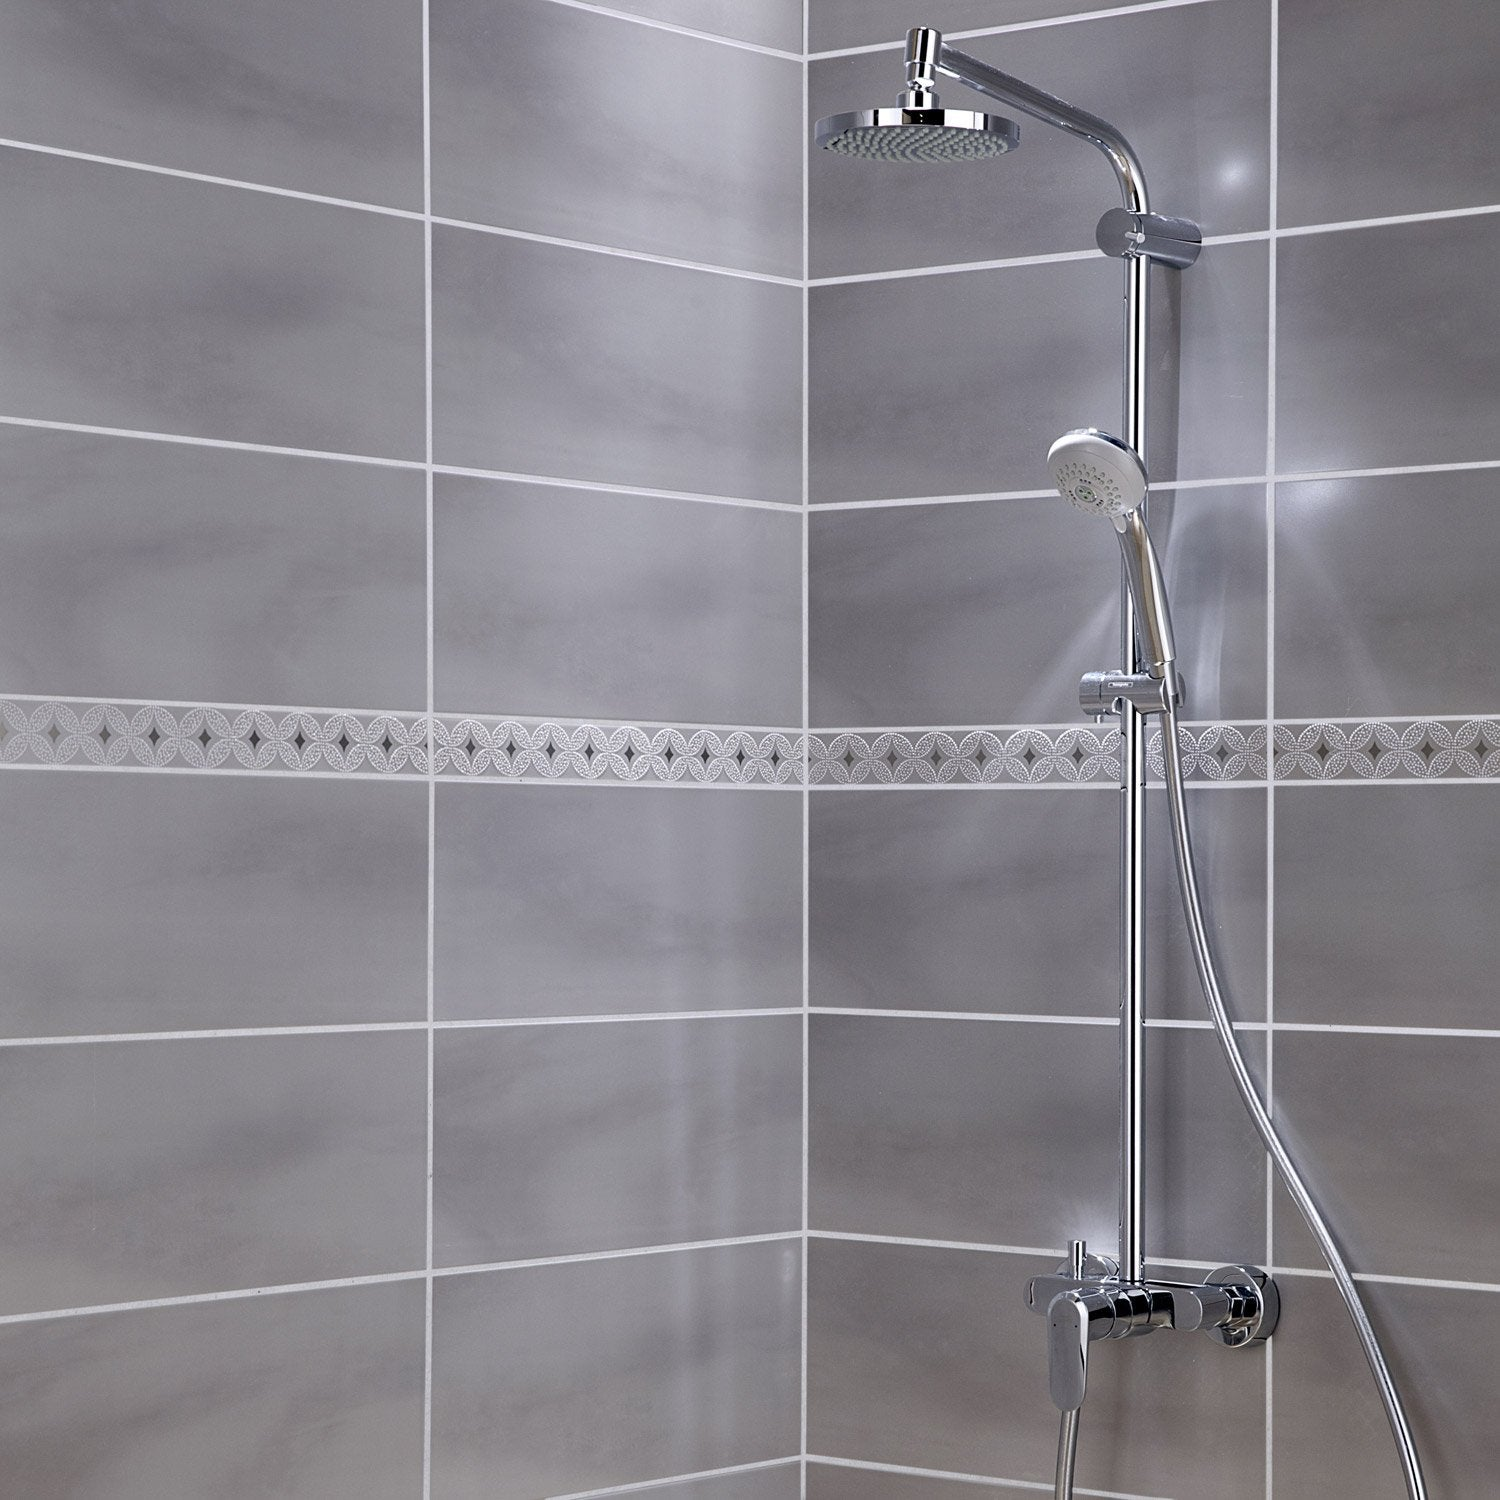 Fa ence mur gris perle brooklyn x cm leroy merlin for Photo de salle de bain carrelage gris